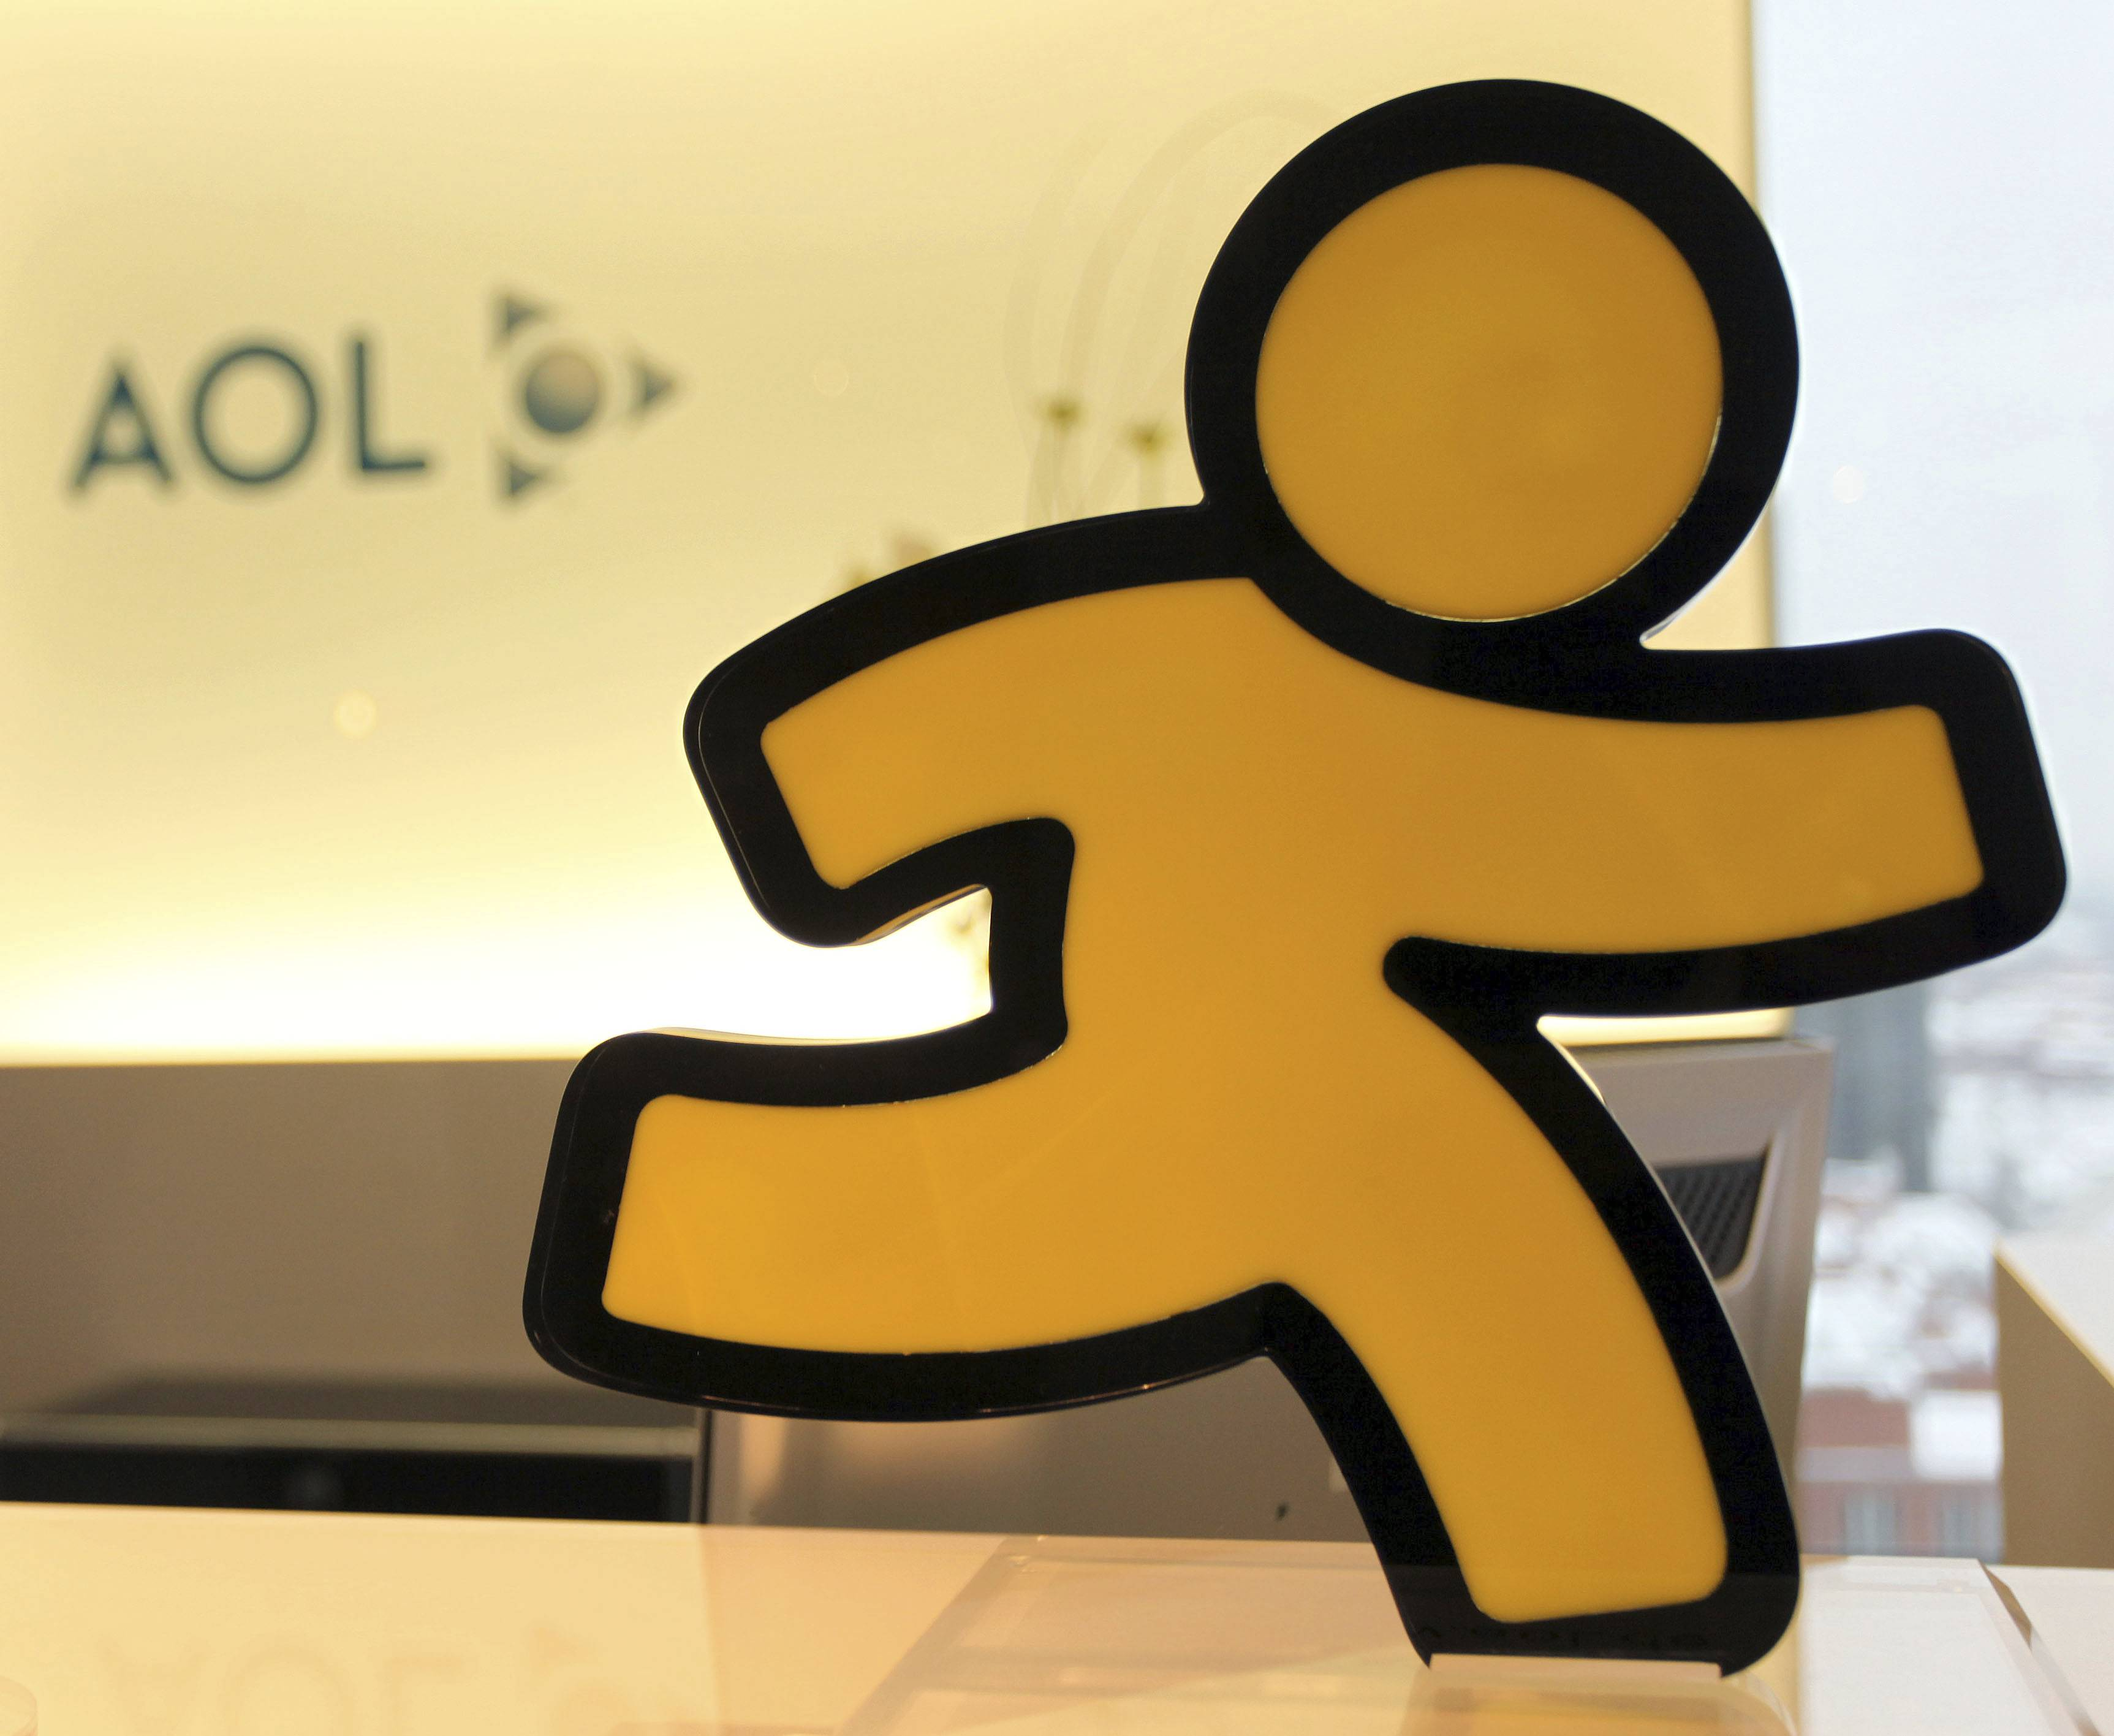 AOL will discontinue its once-popular Instant Messenger platform on Dec. 15.